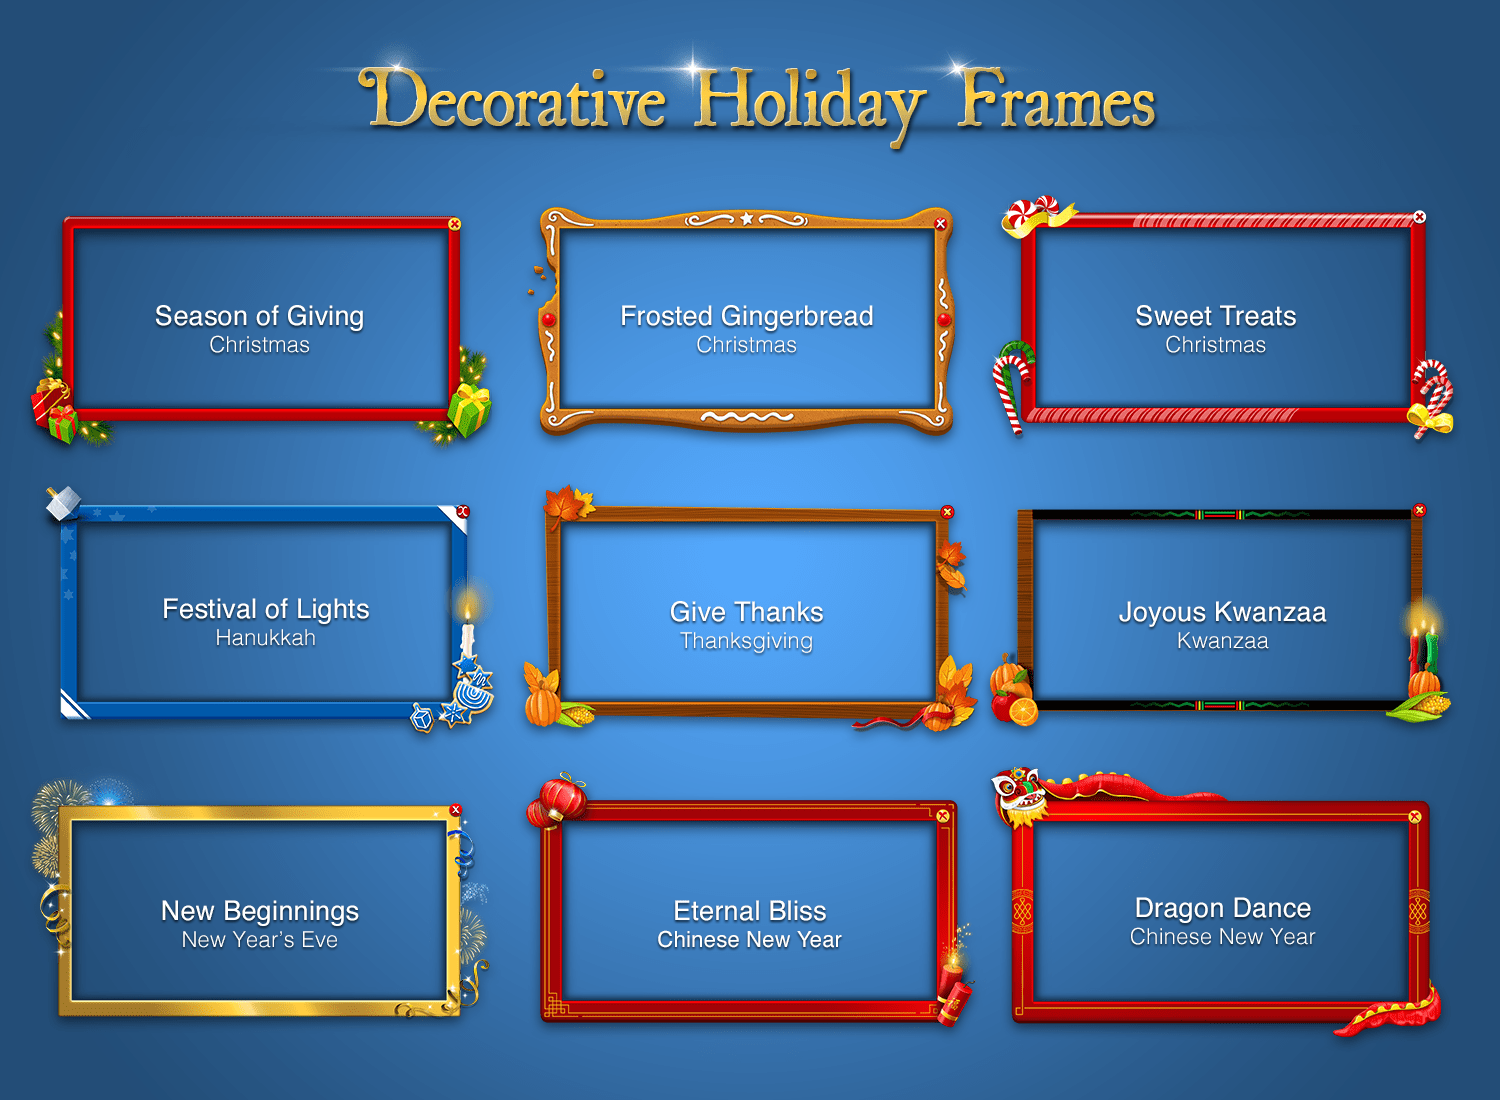 Decorate Your Interstitials With These Free Holiday Frames - Chartboost